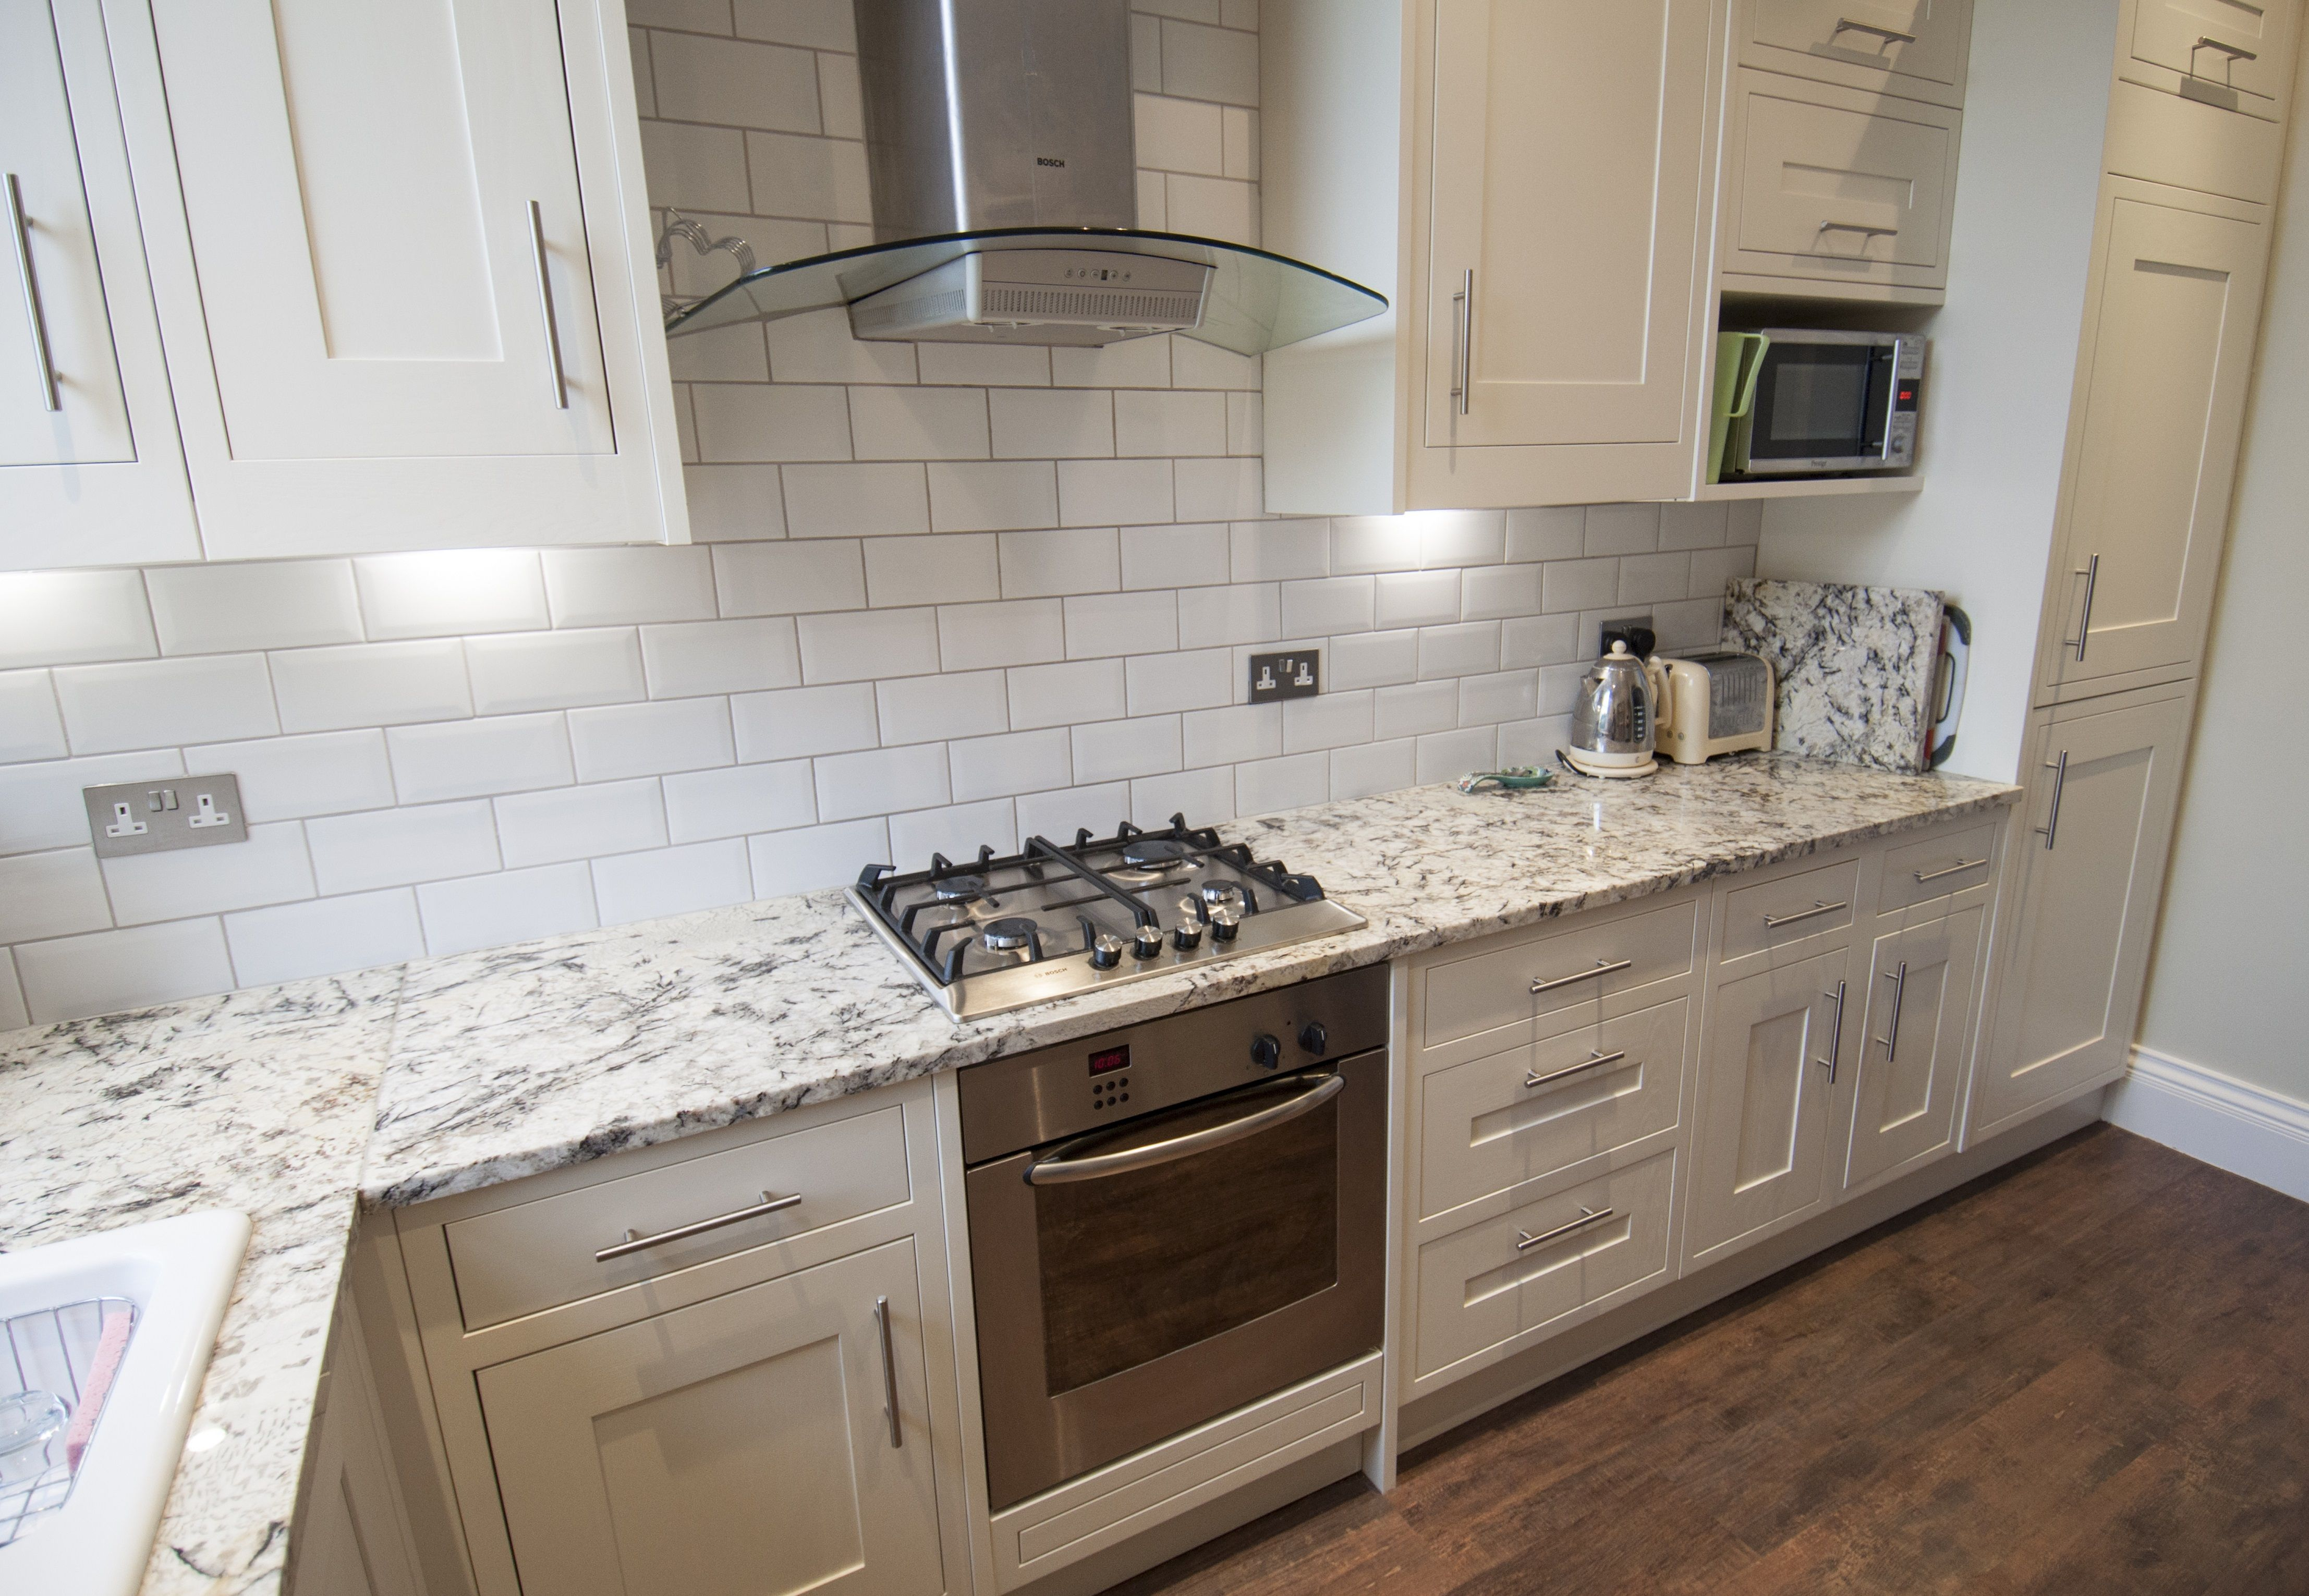 Antique Cream Granite Kitchen Worktops With White Cabinets And Tiles Installed In Blackheath London Granite Worktop Kitchen Kitchen Worktop Kitchen